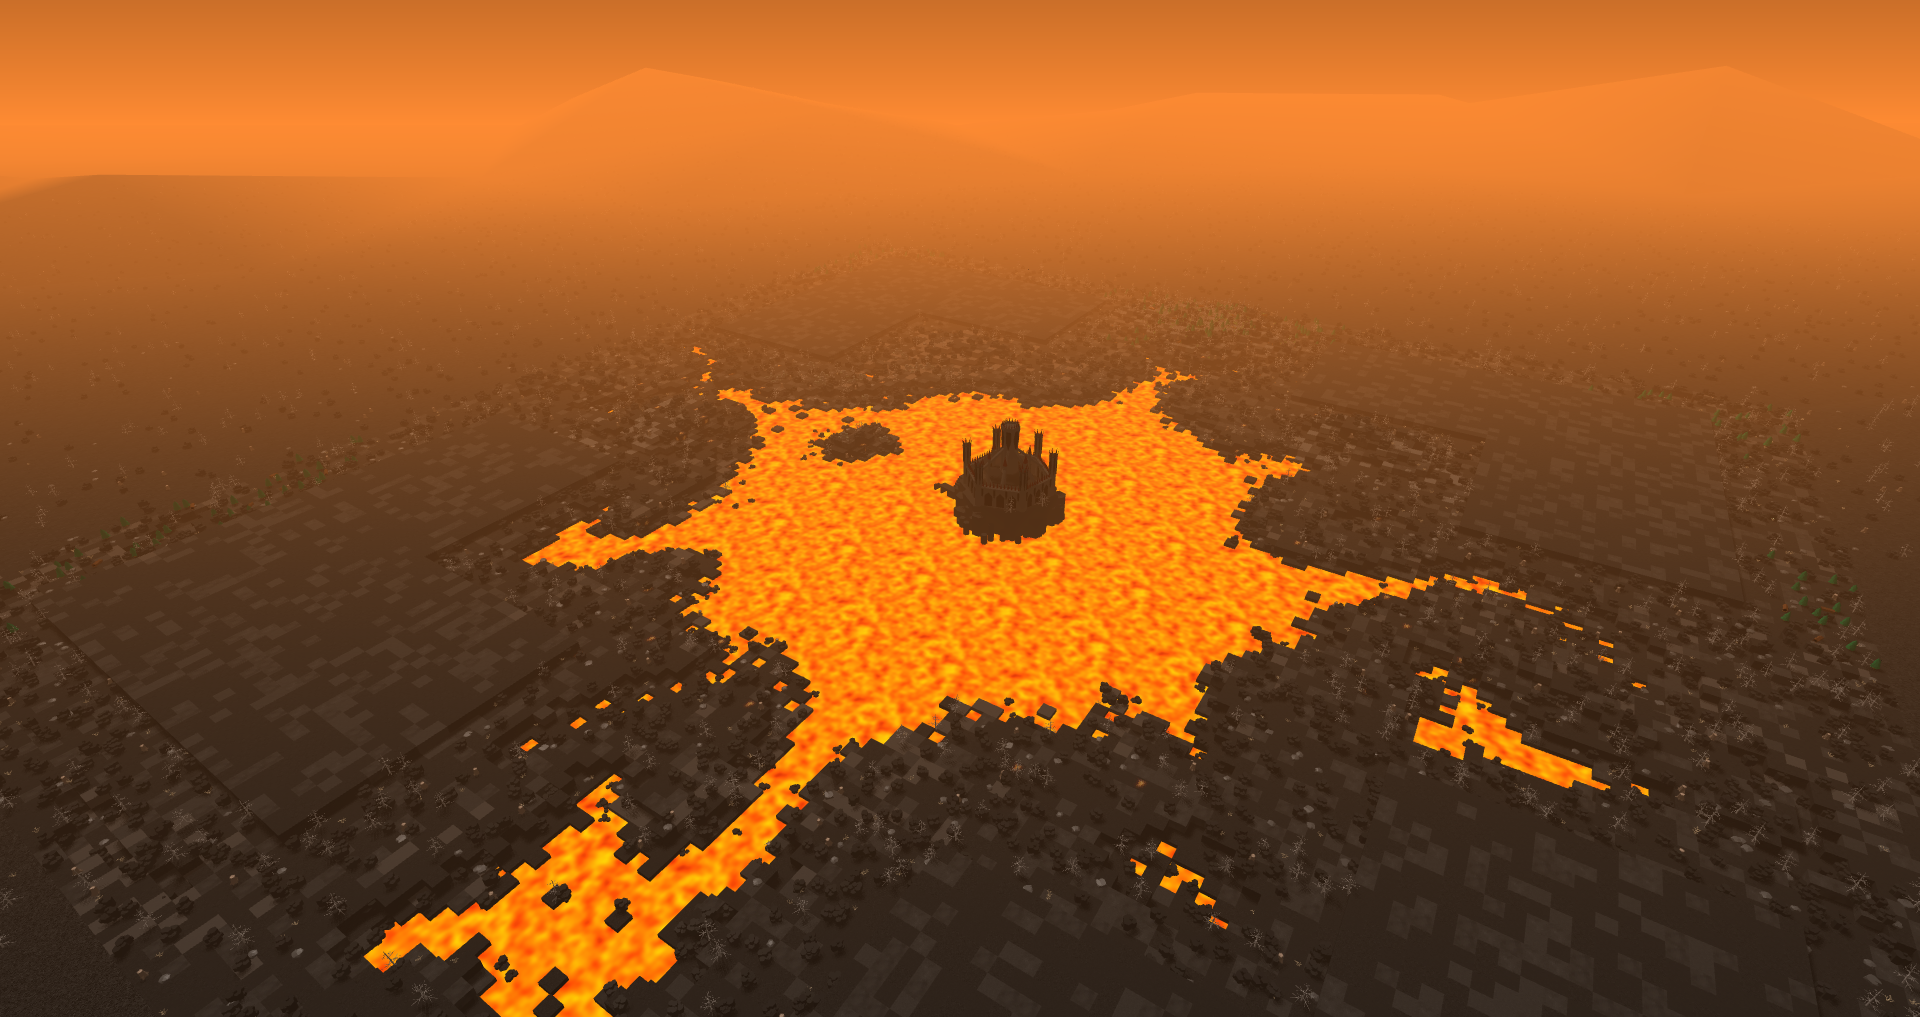 An image of a volcanic map I made for my indie game. You can see a big lava lake with a dark castle in the middle.